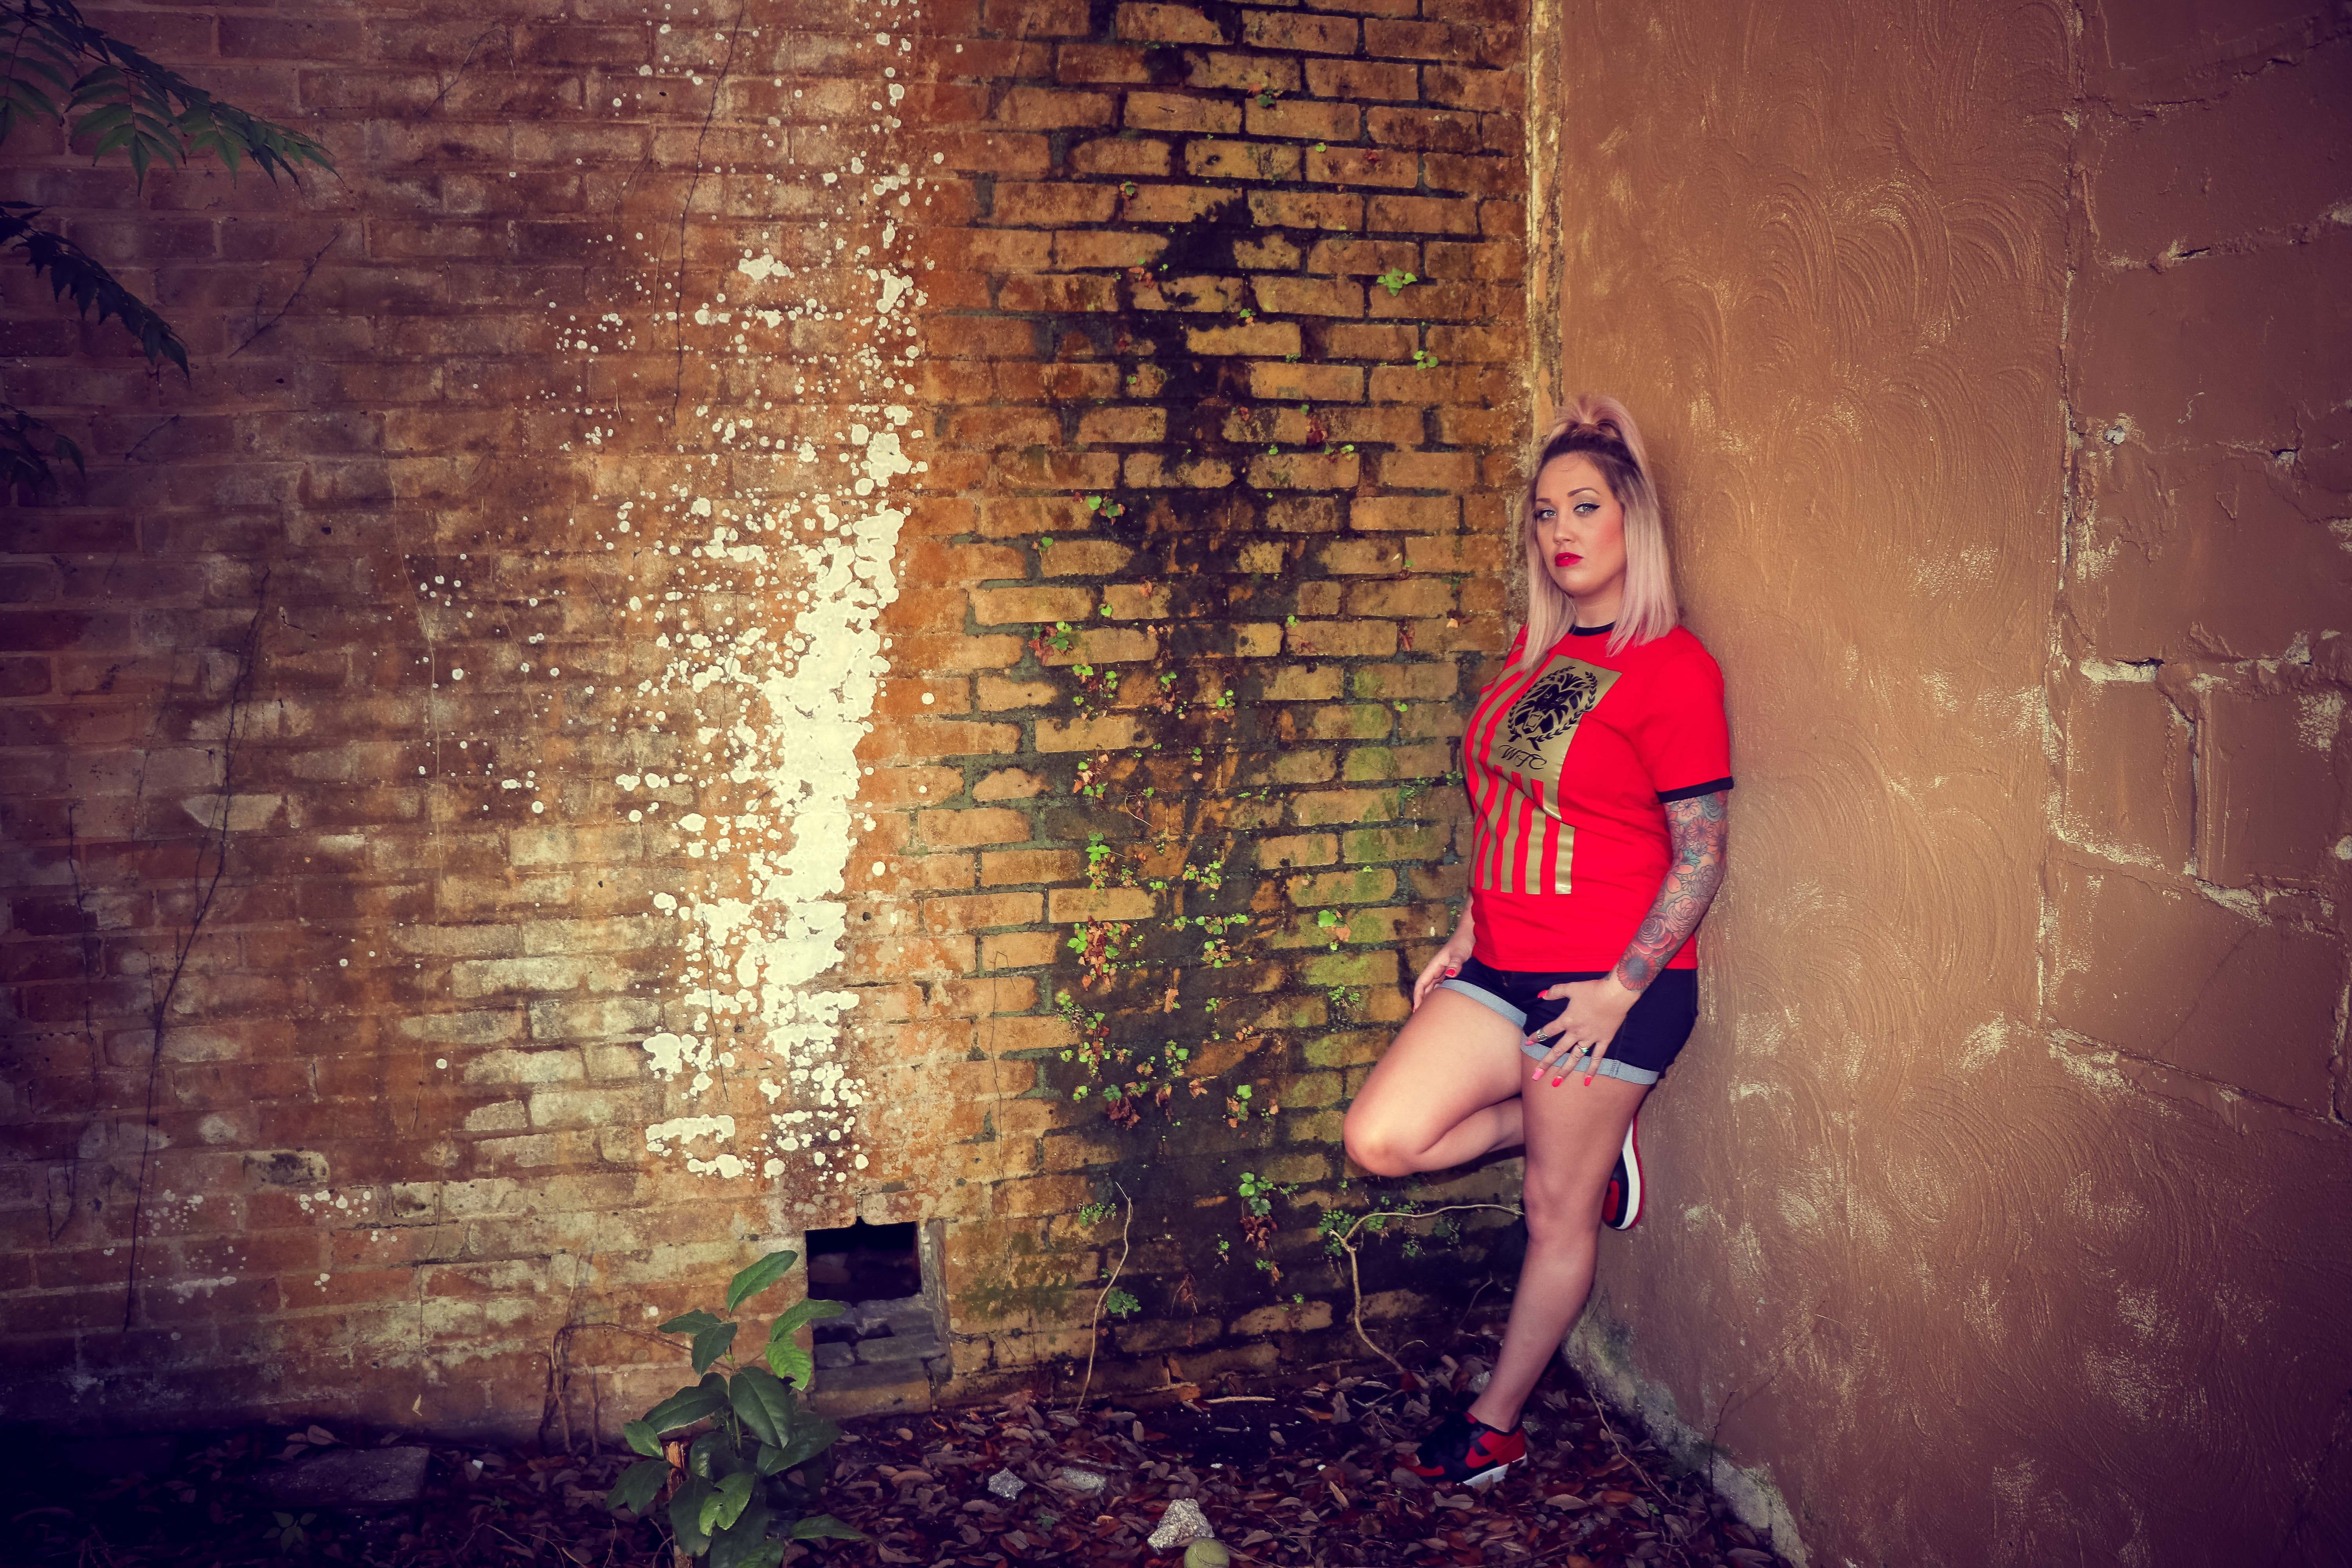 Woman Wearing Red Crew-neck Sleeved Shirt and Blue Denim Short Shorts